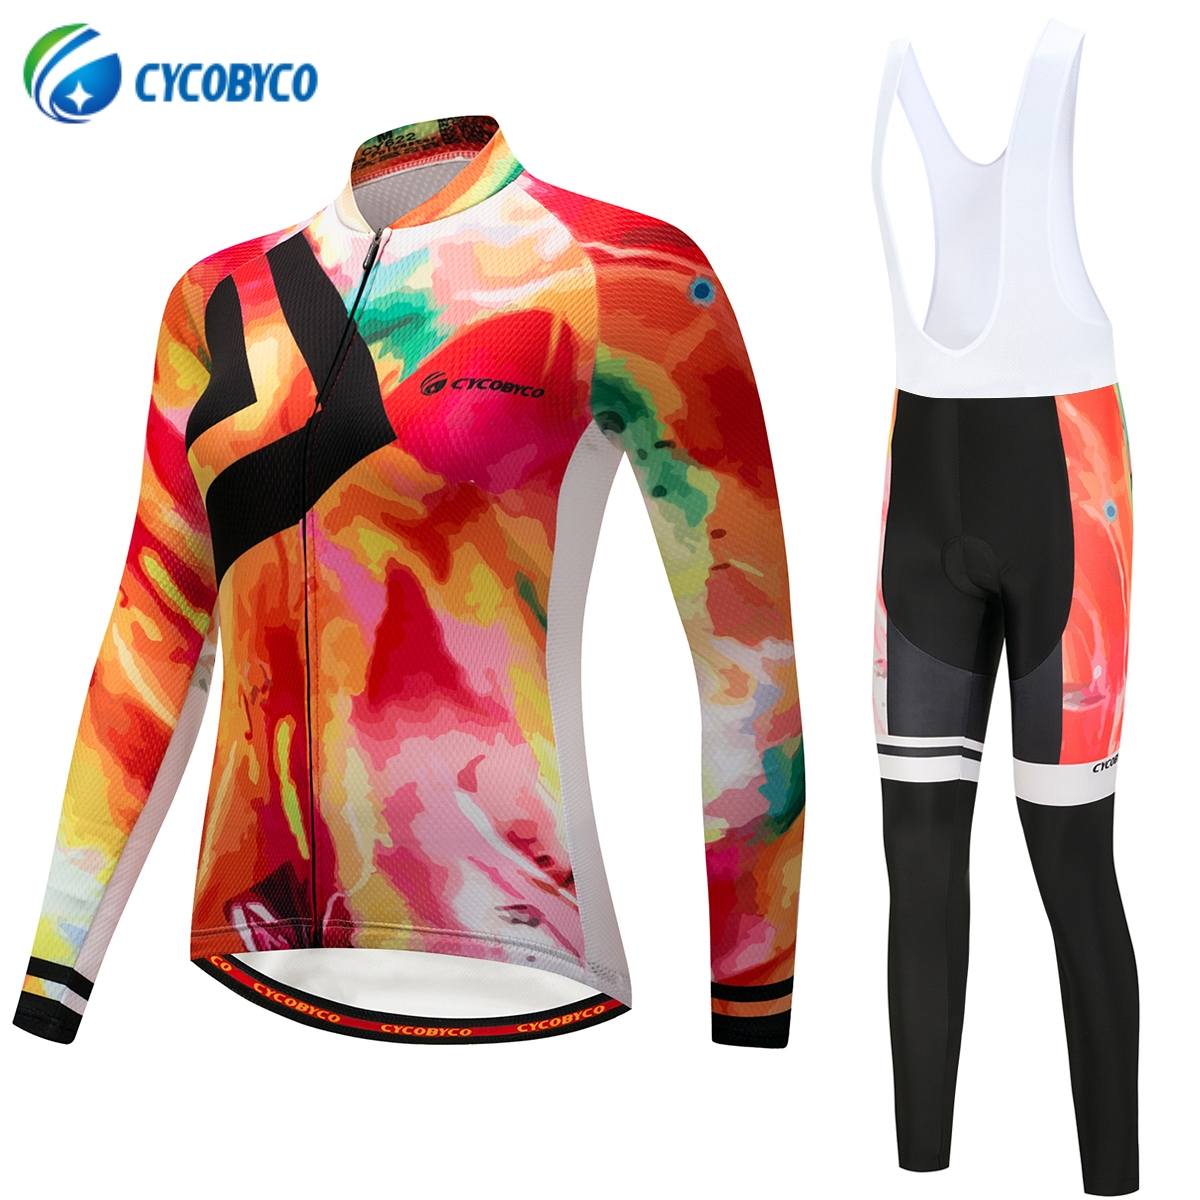 Cycobyco Women Cycling Jersey Sets Long Sleeve Mountain Bike Clothes Wear Maillot Ropa Ciclismo Quick Dry Racing ClothingCycobyco Women Cycling Jersey Sets Long Sleeve Mountain Bike Clothes Wear Maillot Ropa Ciclismo Quick Dry Racing Clothing